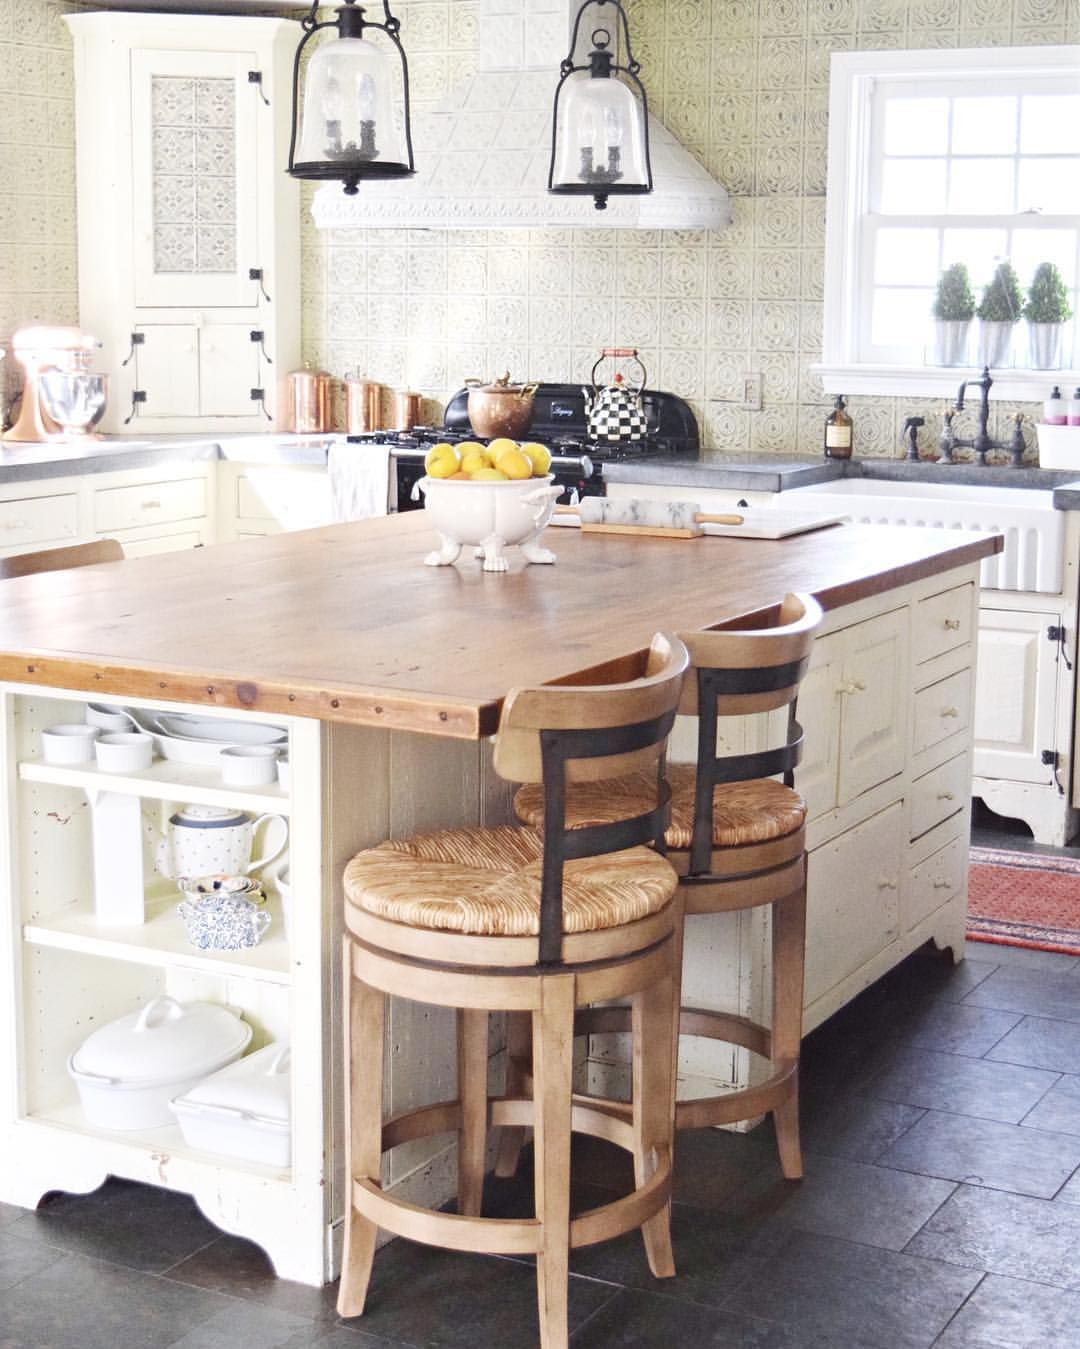 Farmhouse Kitchen With Butcher Block Island And Rustic Counter